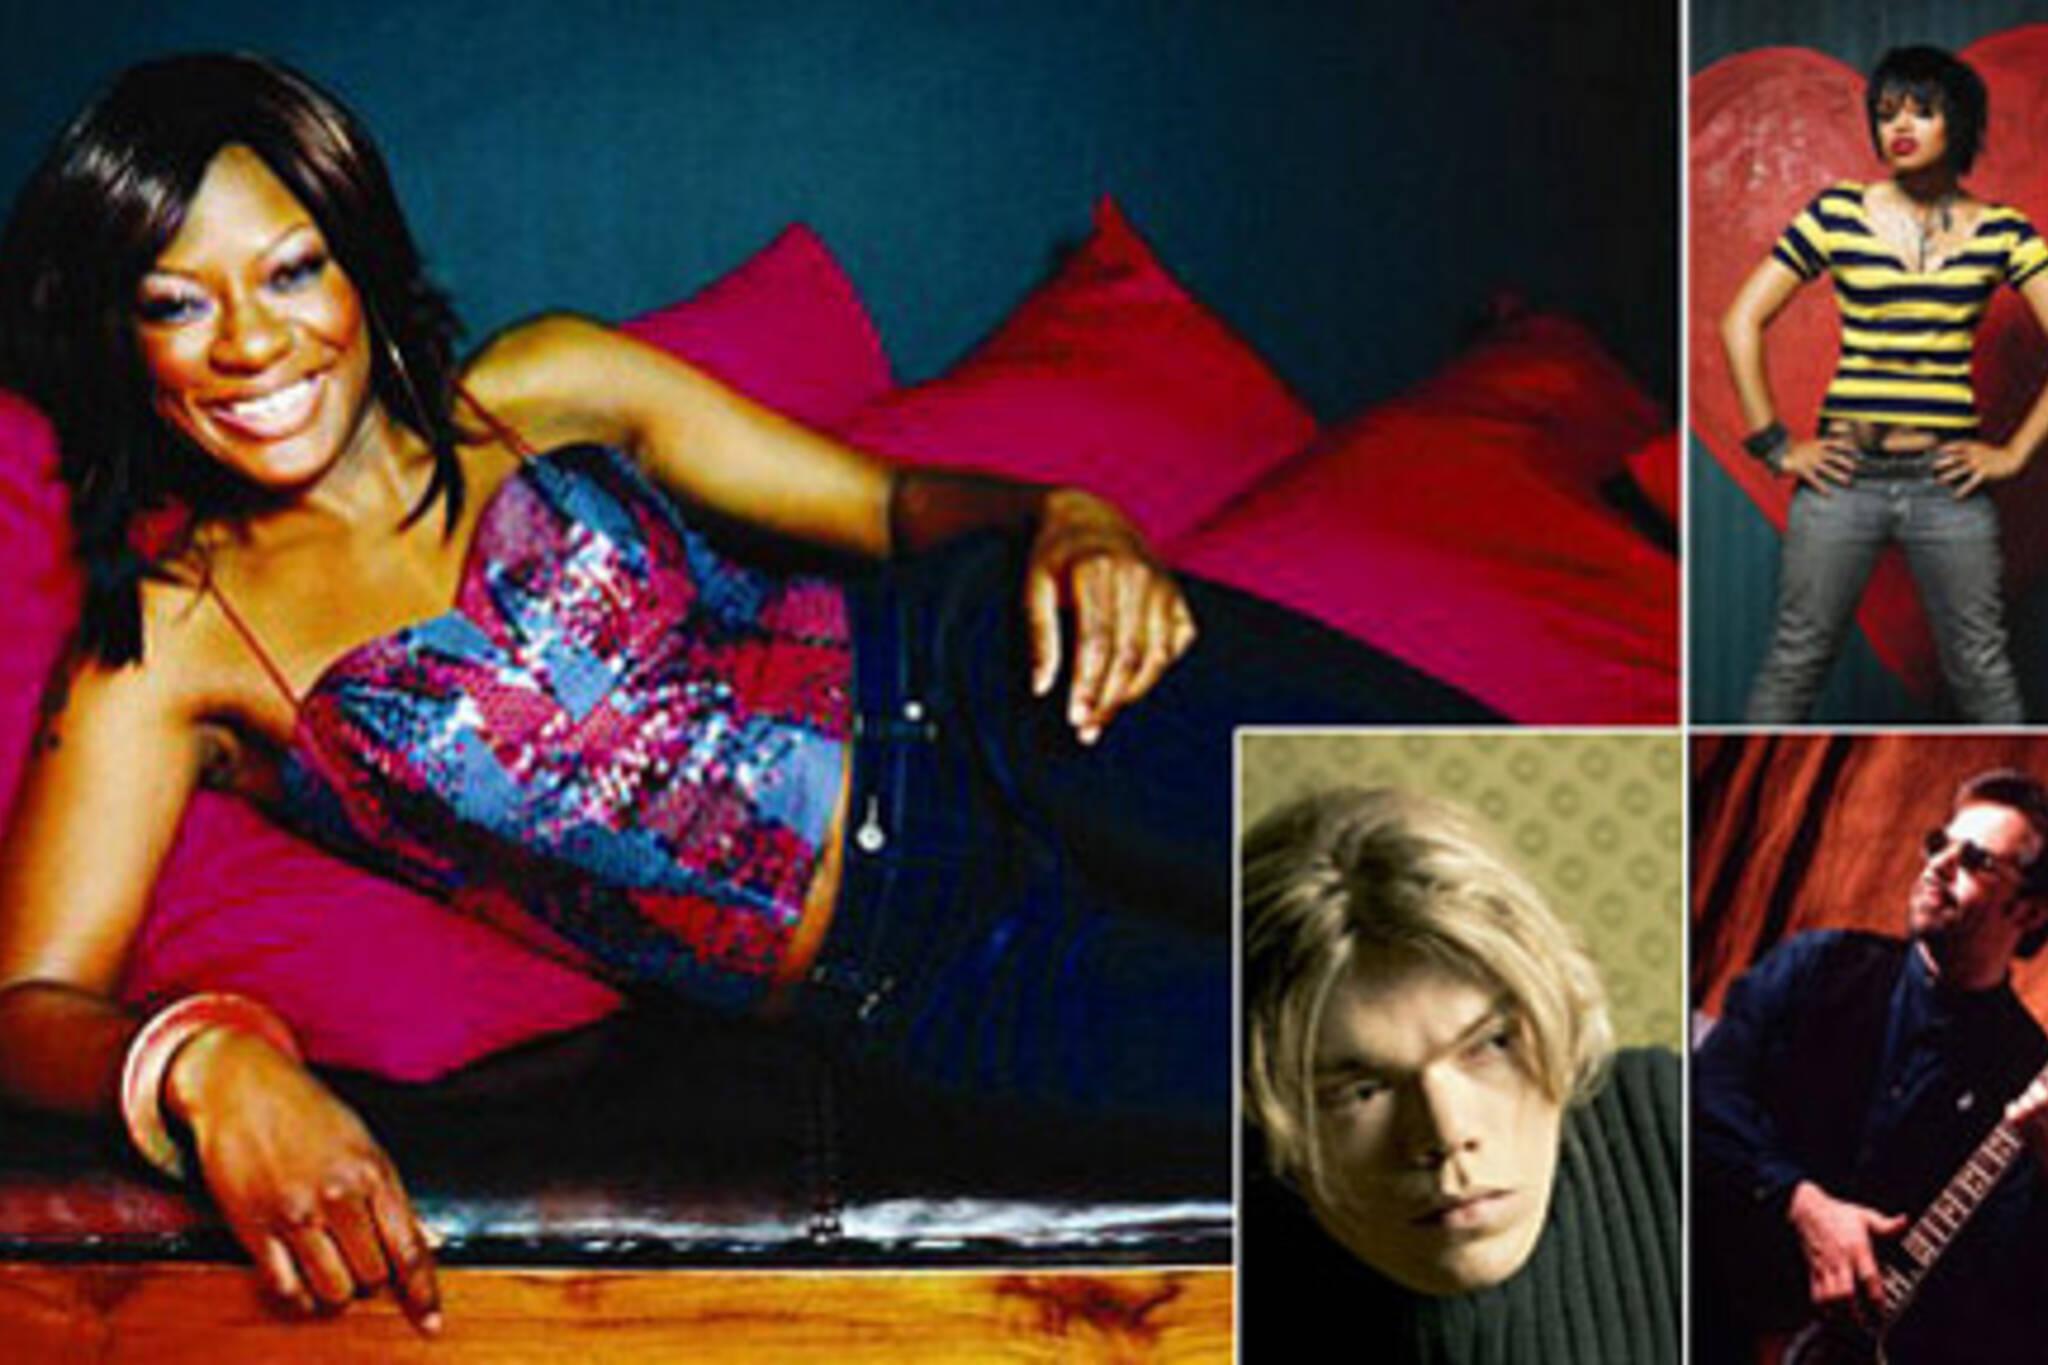 2007 Panty Schmooze Fundraiser - Jully Black, Fefe Dobson, Justine Hines, Terry Kelly